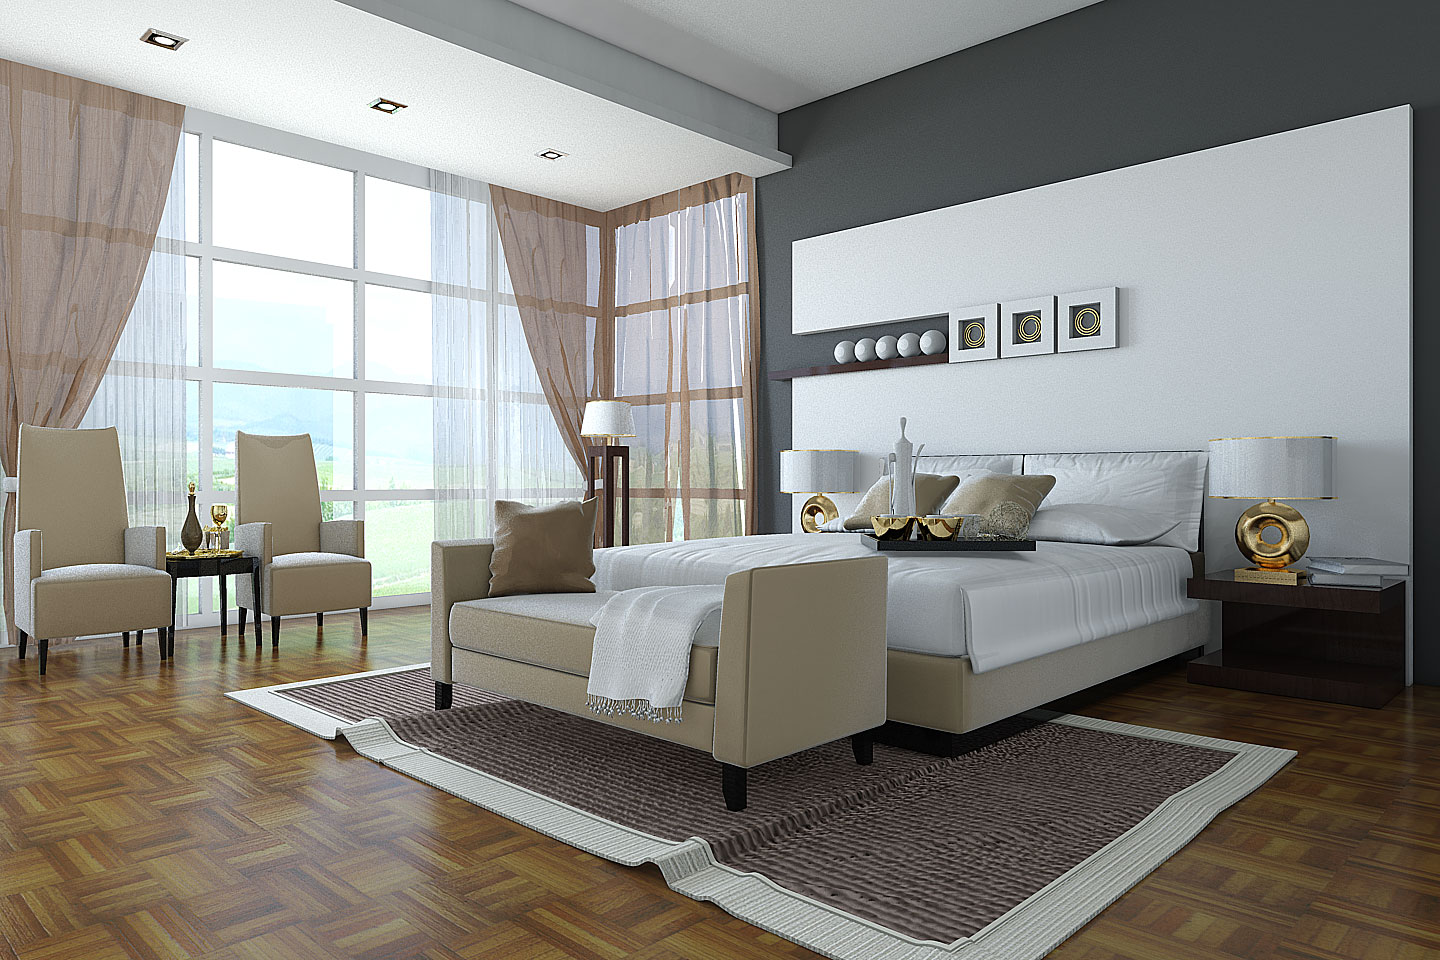 classic bedroom design - Bedrooms Design